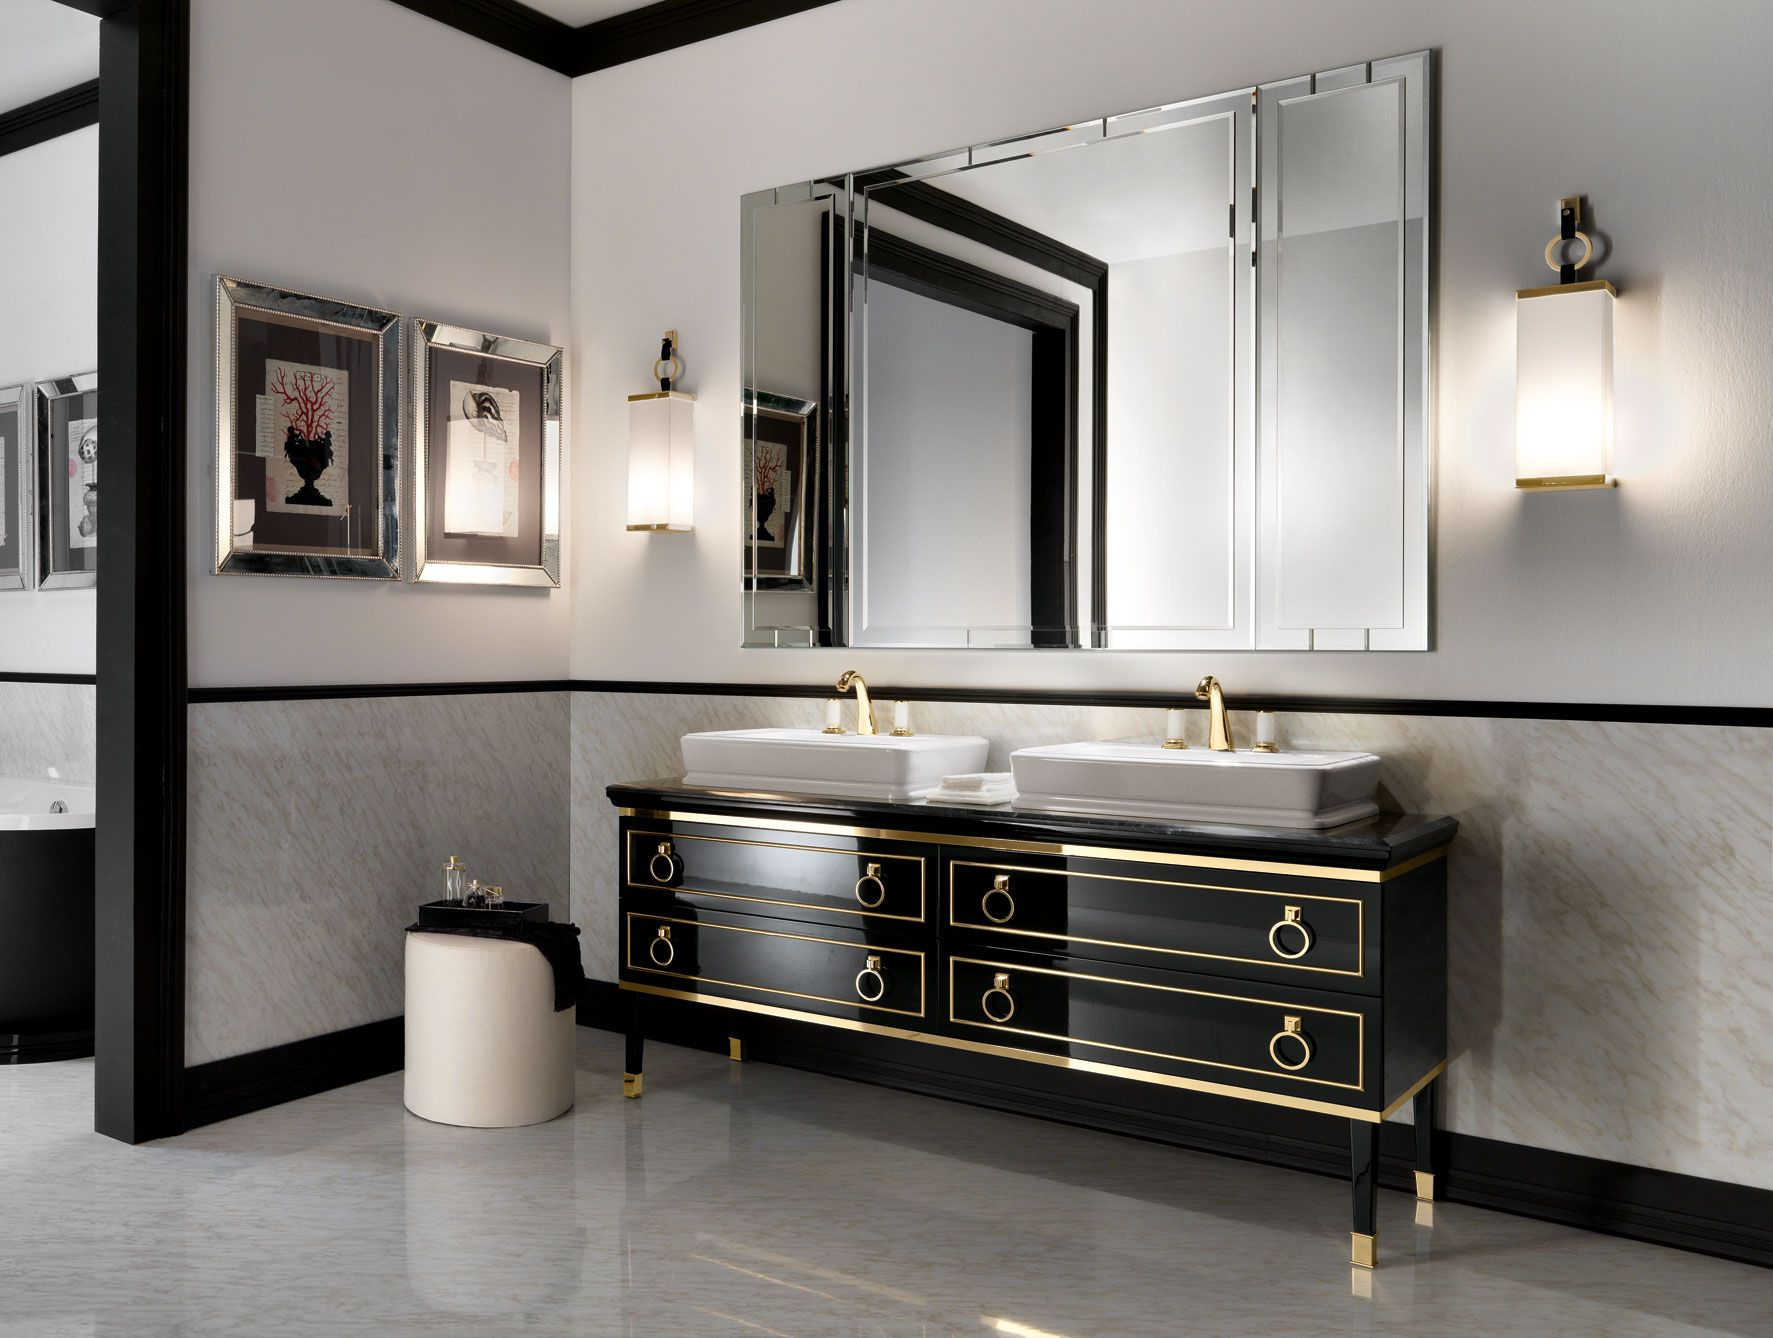 lutetia luxury art deco bathroom vanities: nella vetrina